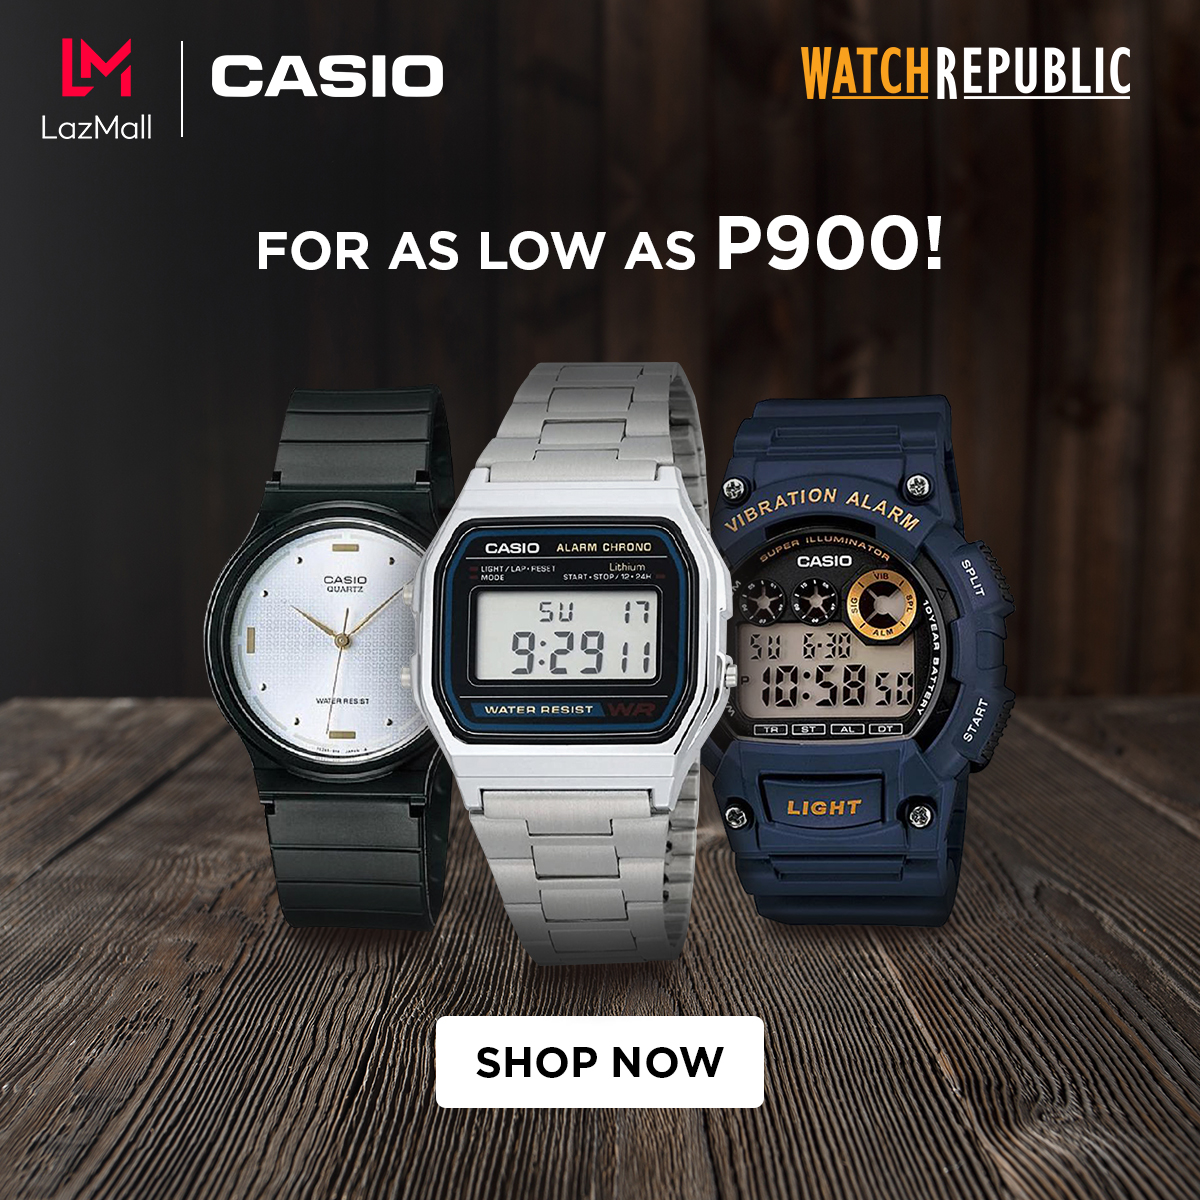 ‼️Watch Republic for as low as P900‼️ 🛒SHOP NOW!➡  🛒SHOP NOW!➡   🚚Cash on Delivery  **Price is subject to change without prior notice  #LazadaFinds #LazadaPH #LazadaxKathryn #LazadaxLMH  #payday #NasaLazadaYan #shoponline